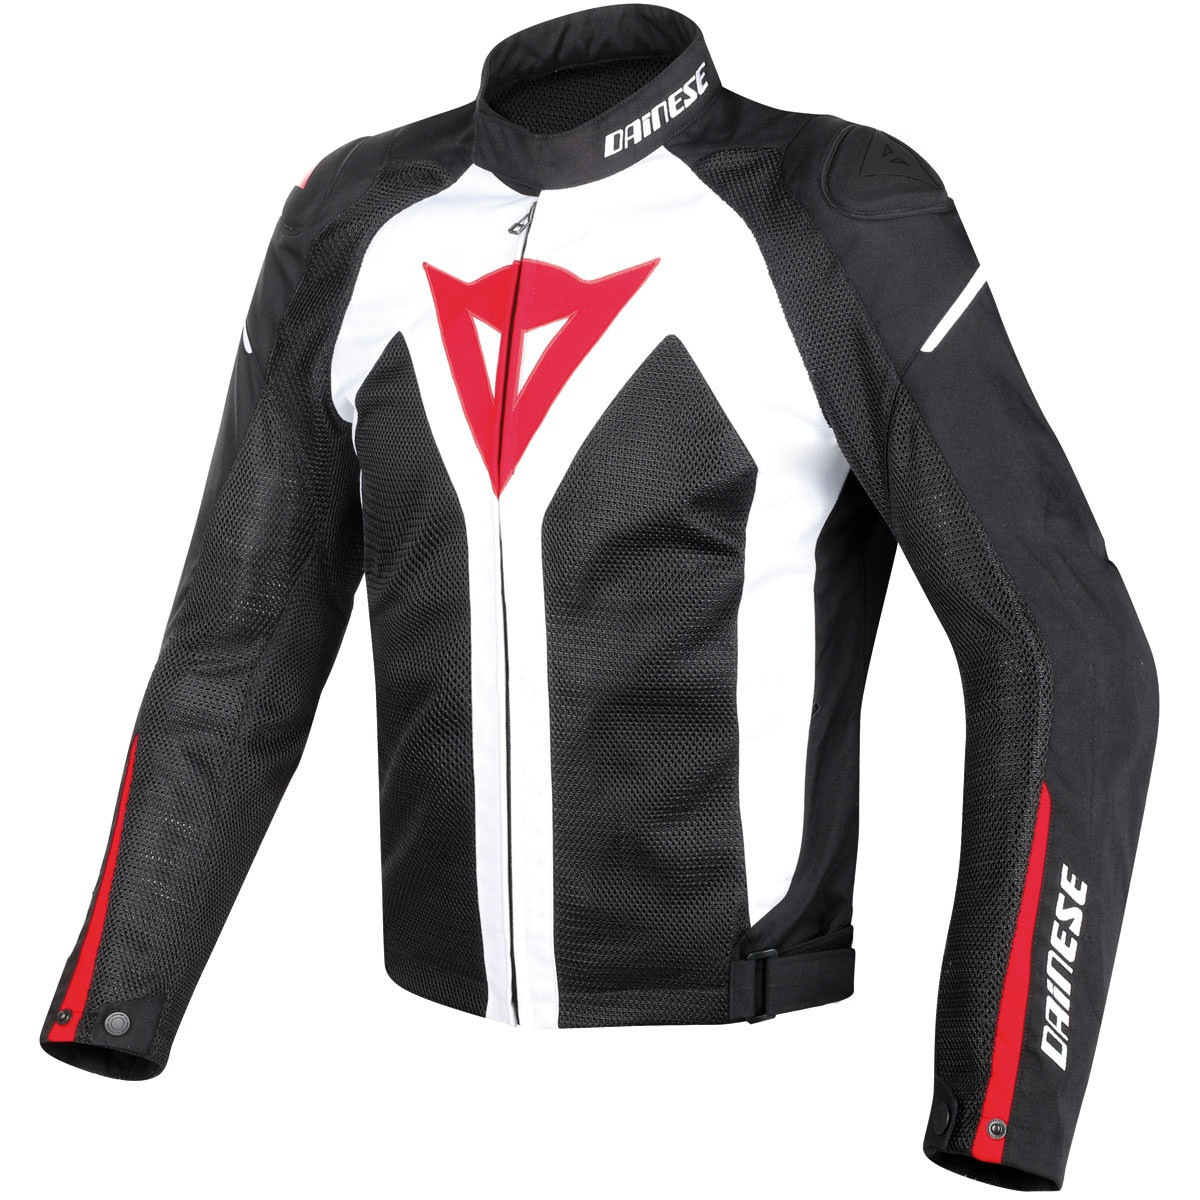 half off 0c8d0 a80a1 Giacca moto Dainese Hyper Flux D-Dry bianco nero rosso